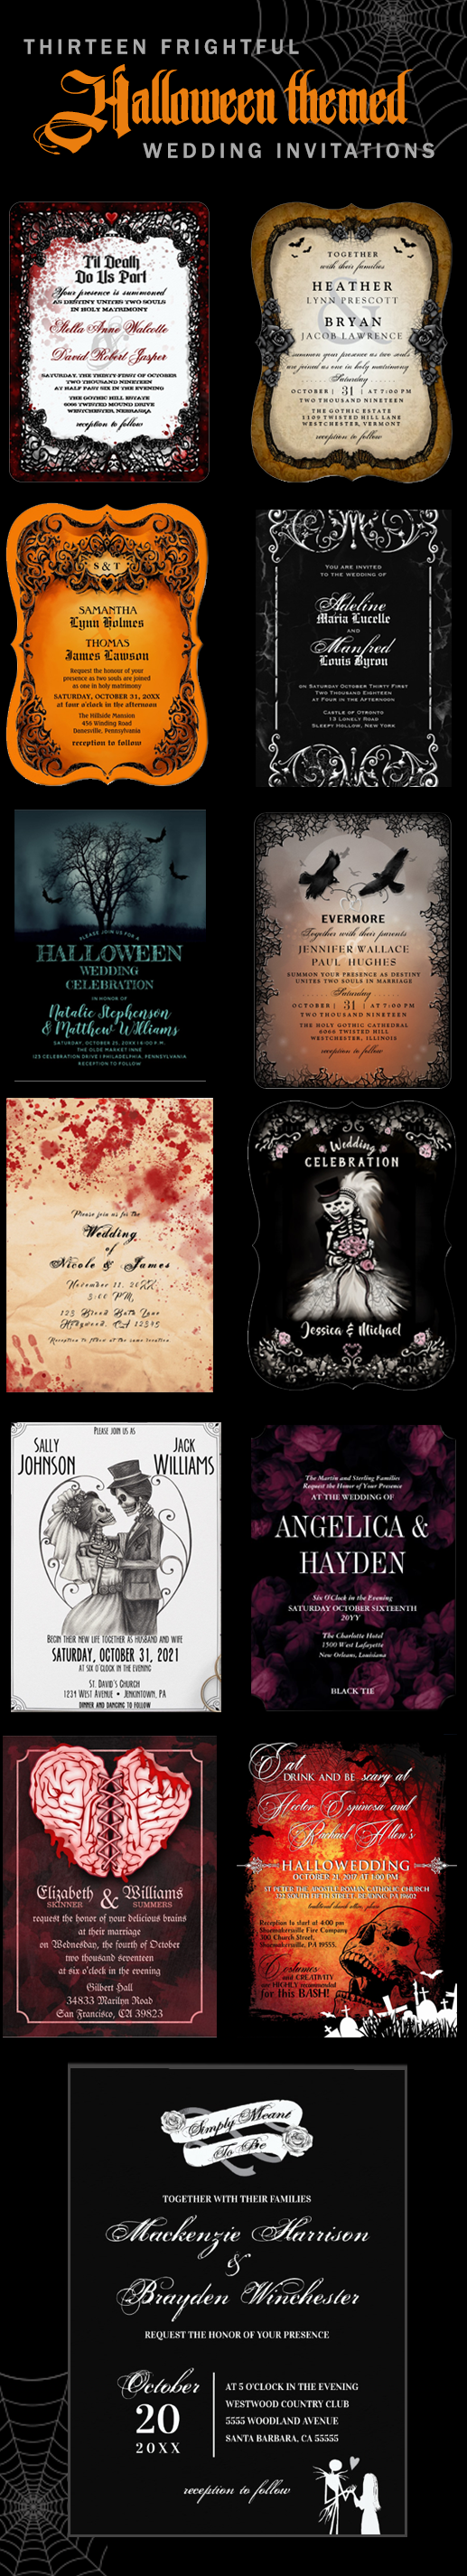 Halloween Wedding Invitations